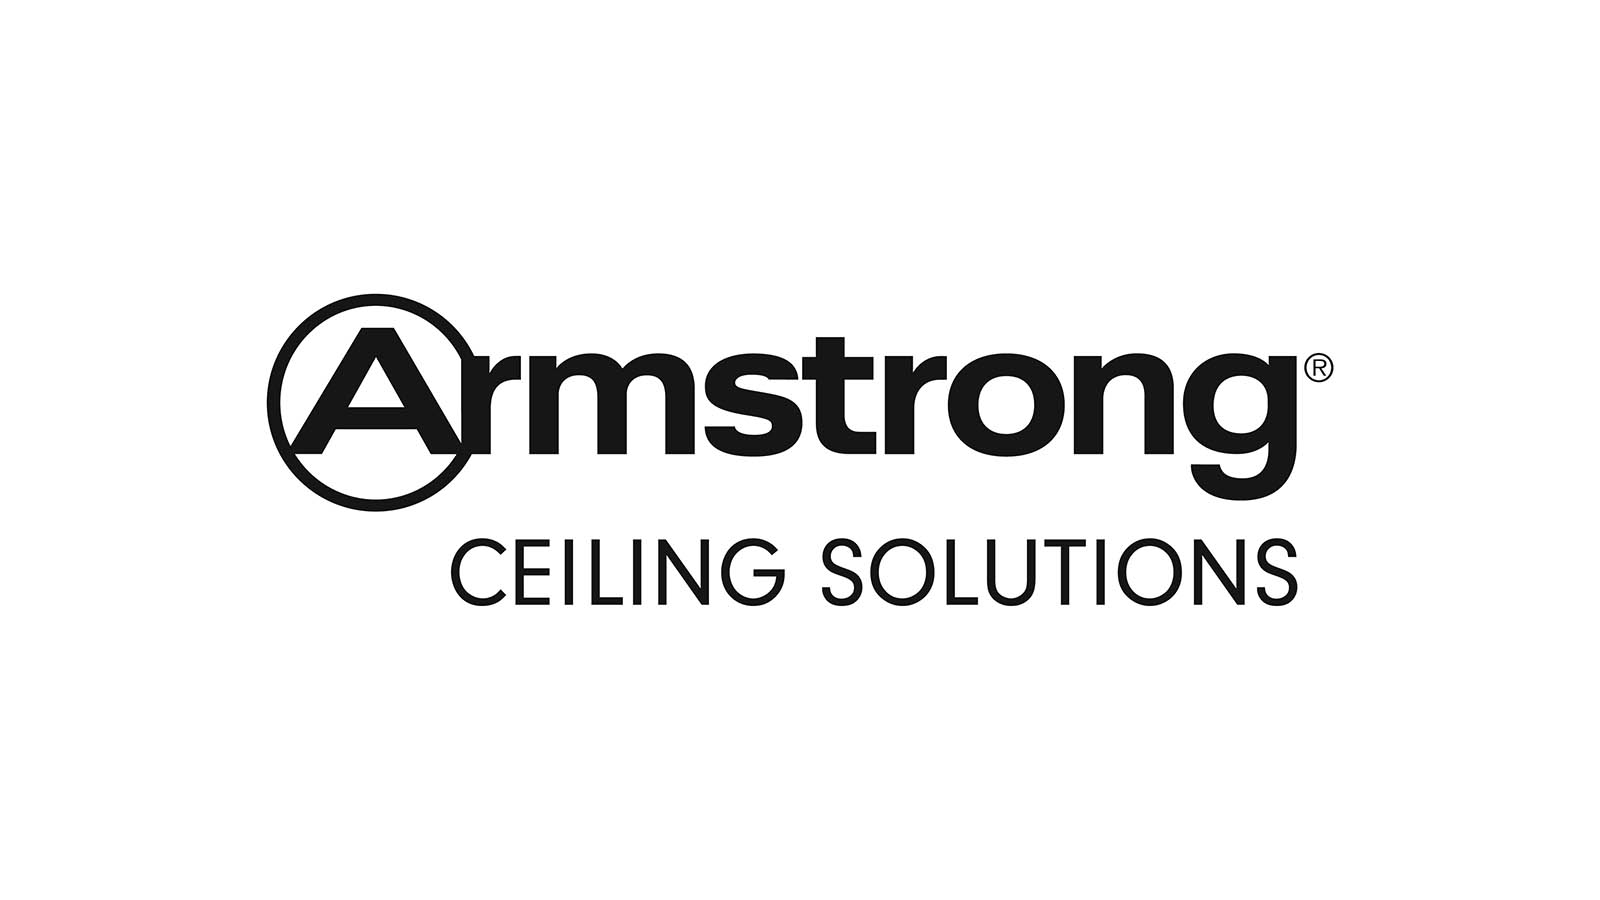 Armstrong Ceiling Solutions' New Ownership Confirmed